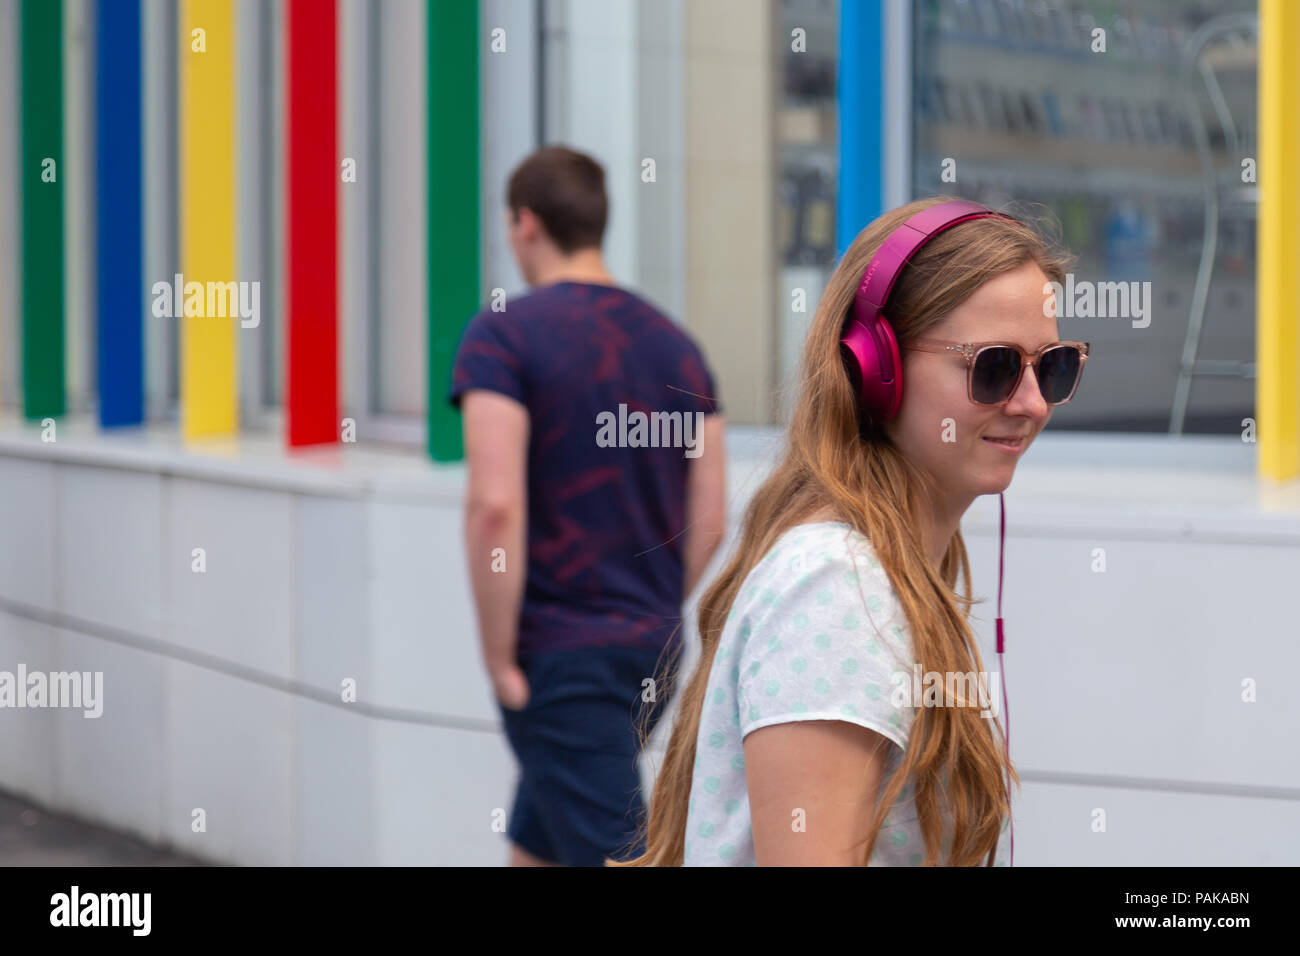 Moscow, Russia. 22nd July 2018. A group of young people in identical multi-colored headphones SONY 'h.ear on' gathered for party near the entrance to the metro station Savelovskaya. After a couple of minutes the audience began to applaud and with smiles on their faces quickly dissolved in the crowd of passengers. Remote Moscow is a performance-journey across Moscow for a group of 50 people. This is a theatrical project of a new format in genre of 'promenade-performance', combines elements of a performance, an excursion, a computer game and a quest. Credit: Andrey Yanevich/Alamy Live News - Stock Image